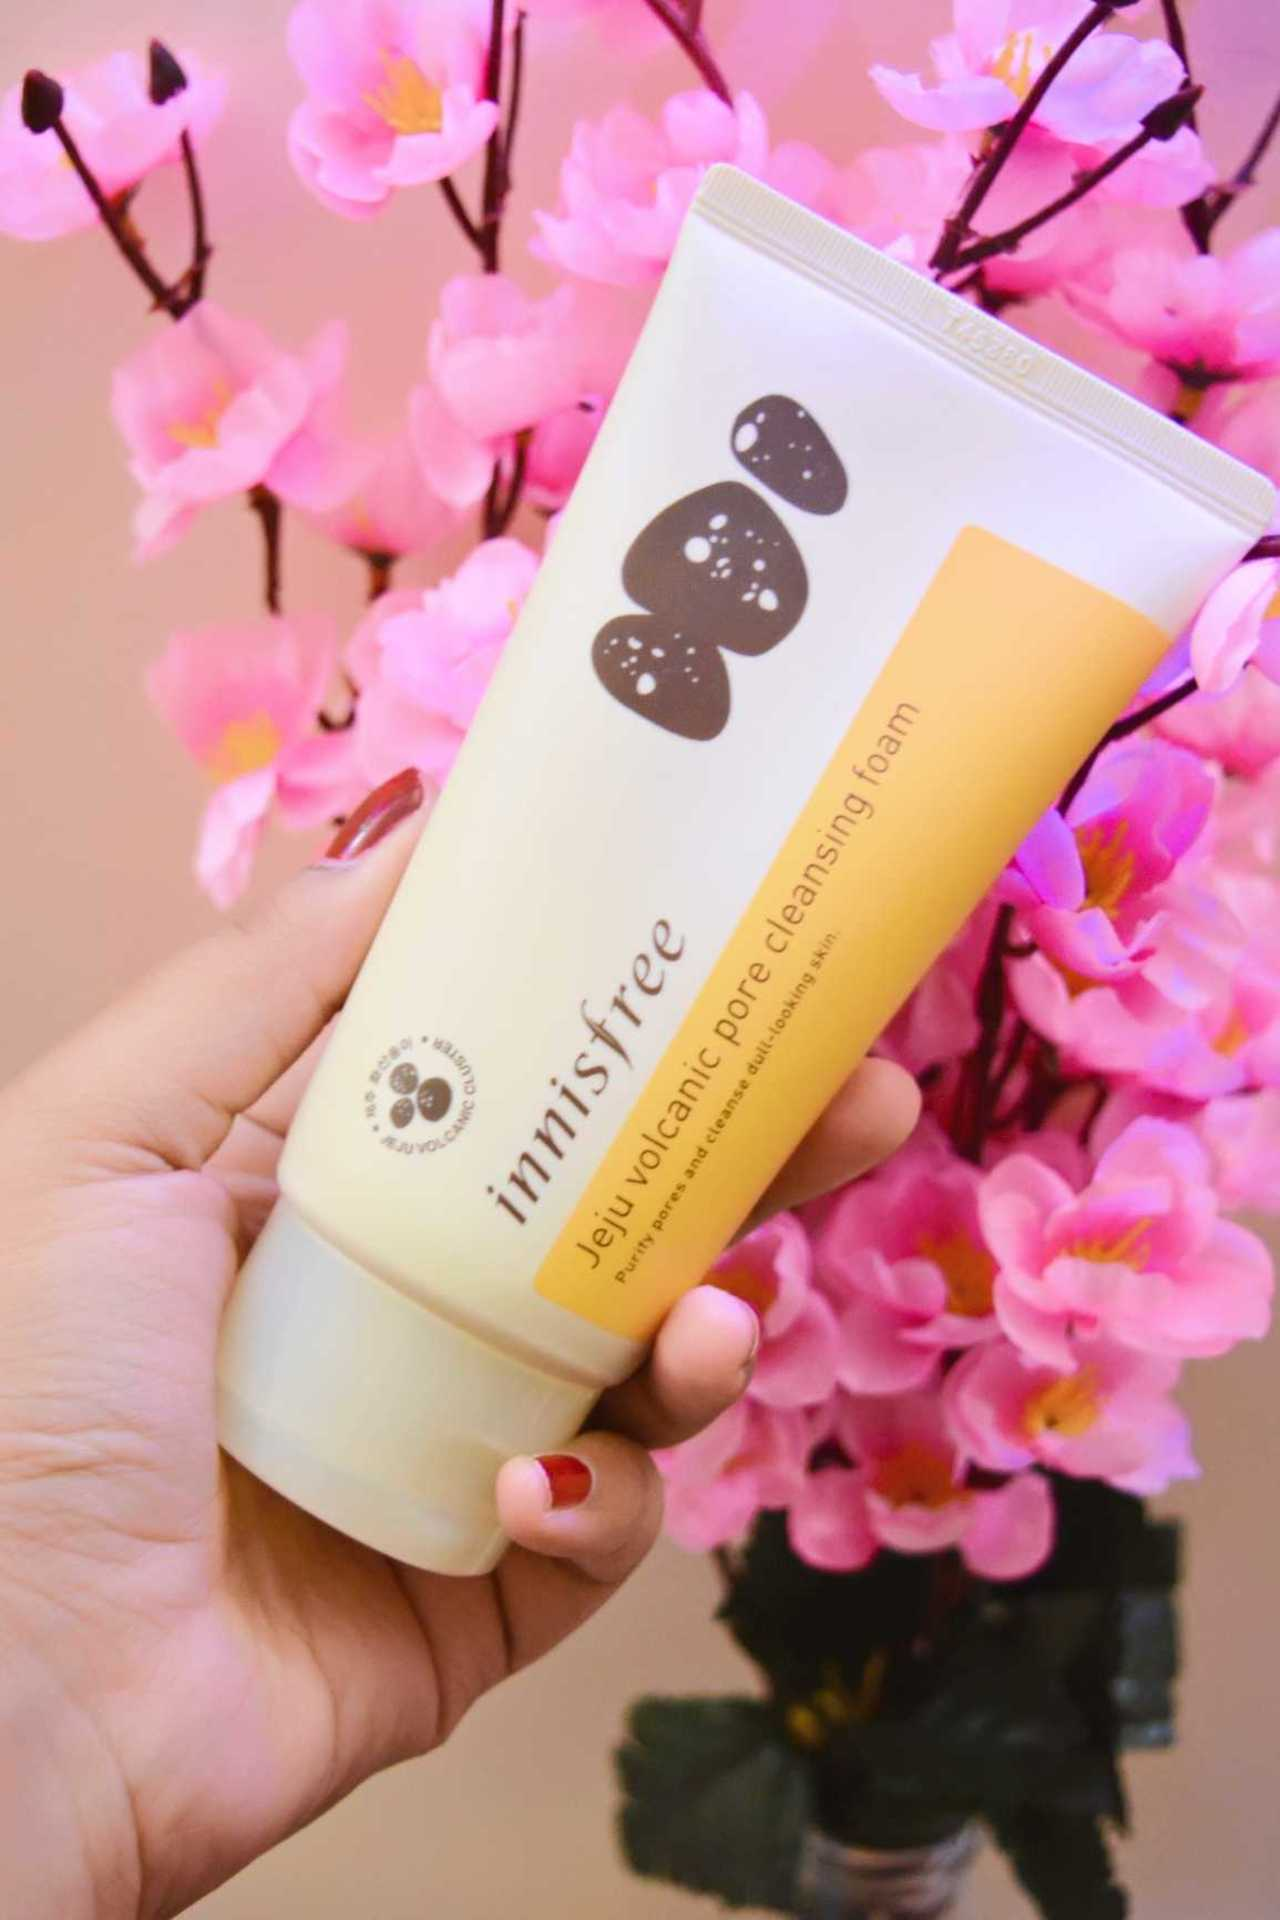 Innisfree Jeju Volcanic Pore Cleansing Foam Review! image